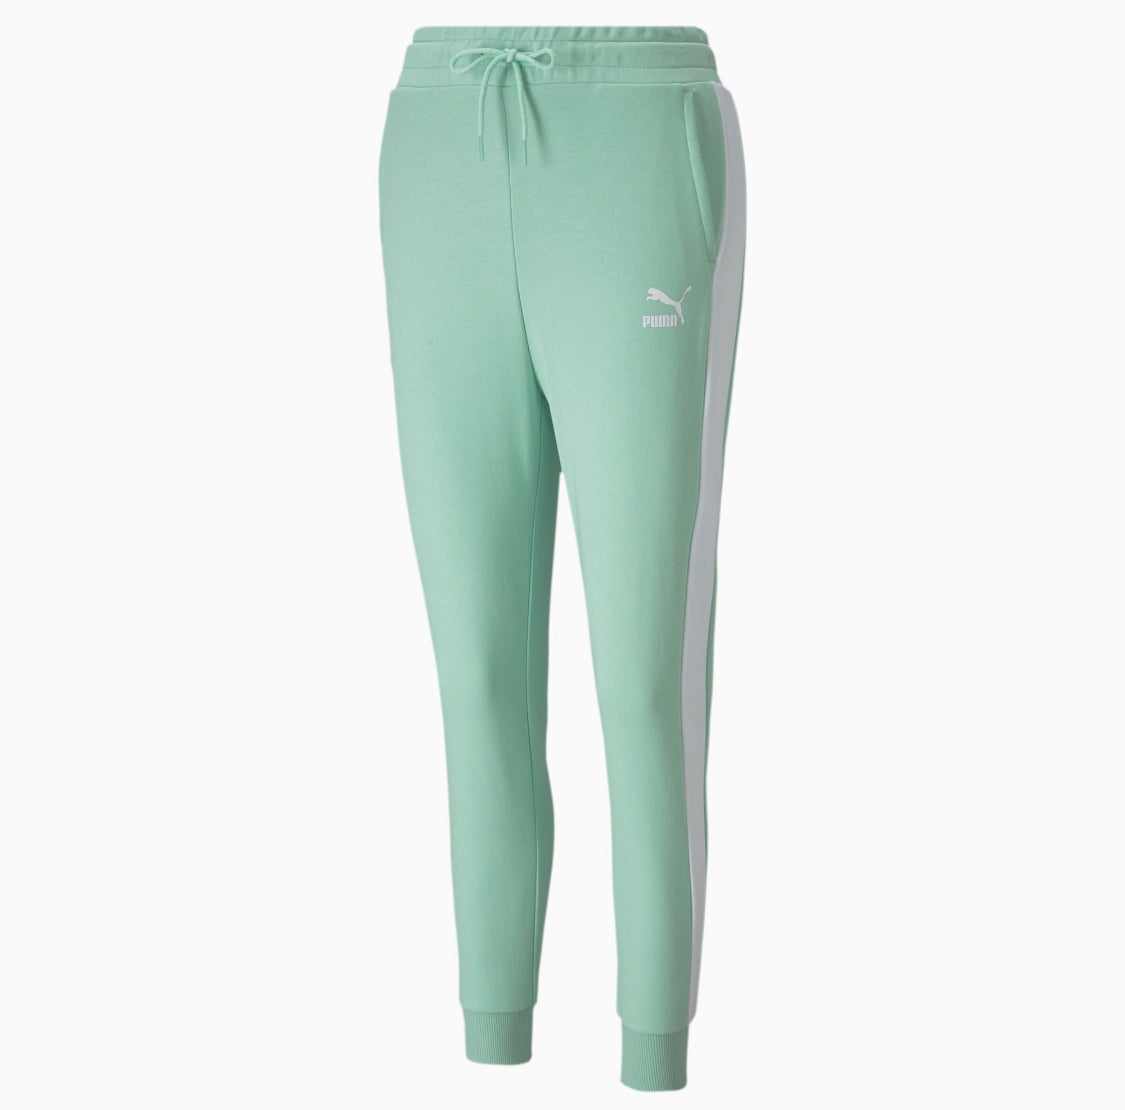 Puma T7 Track Pants Women's - Mist Green